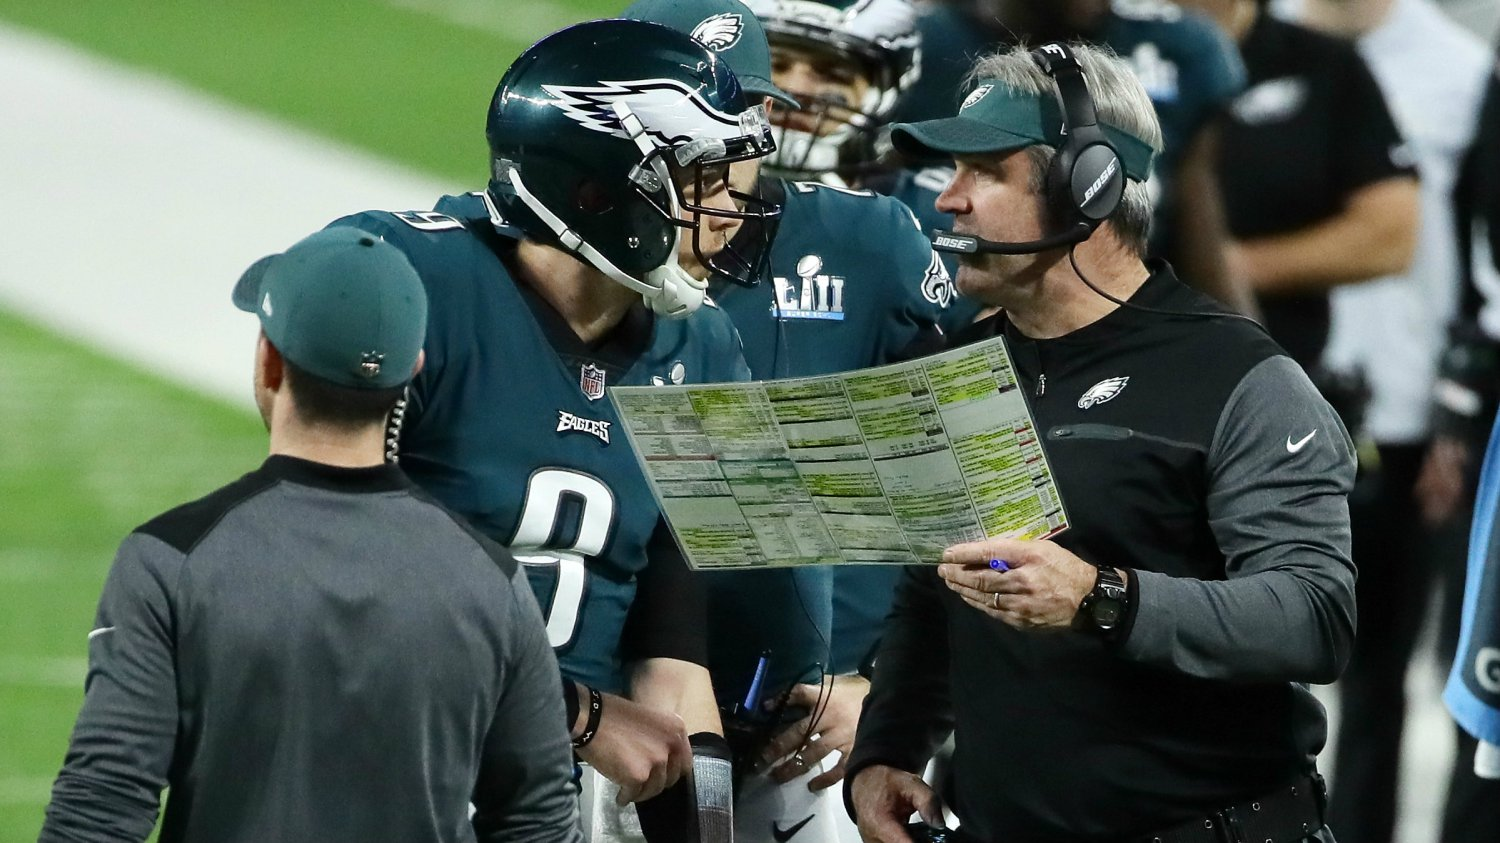 Doug Pederson Was Aggressive As Always - Doug never let his foot off the gas.